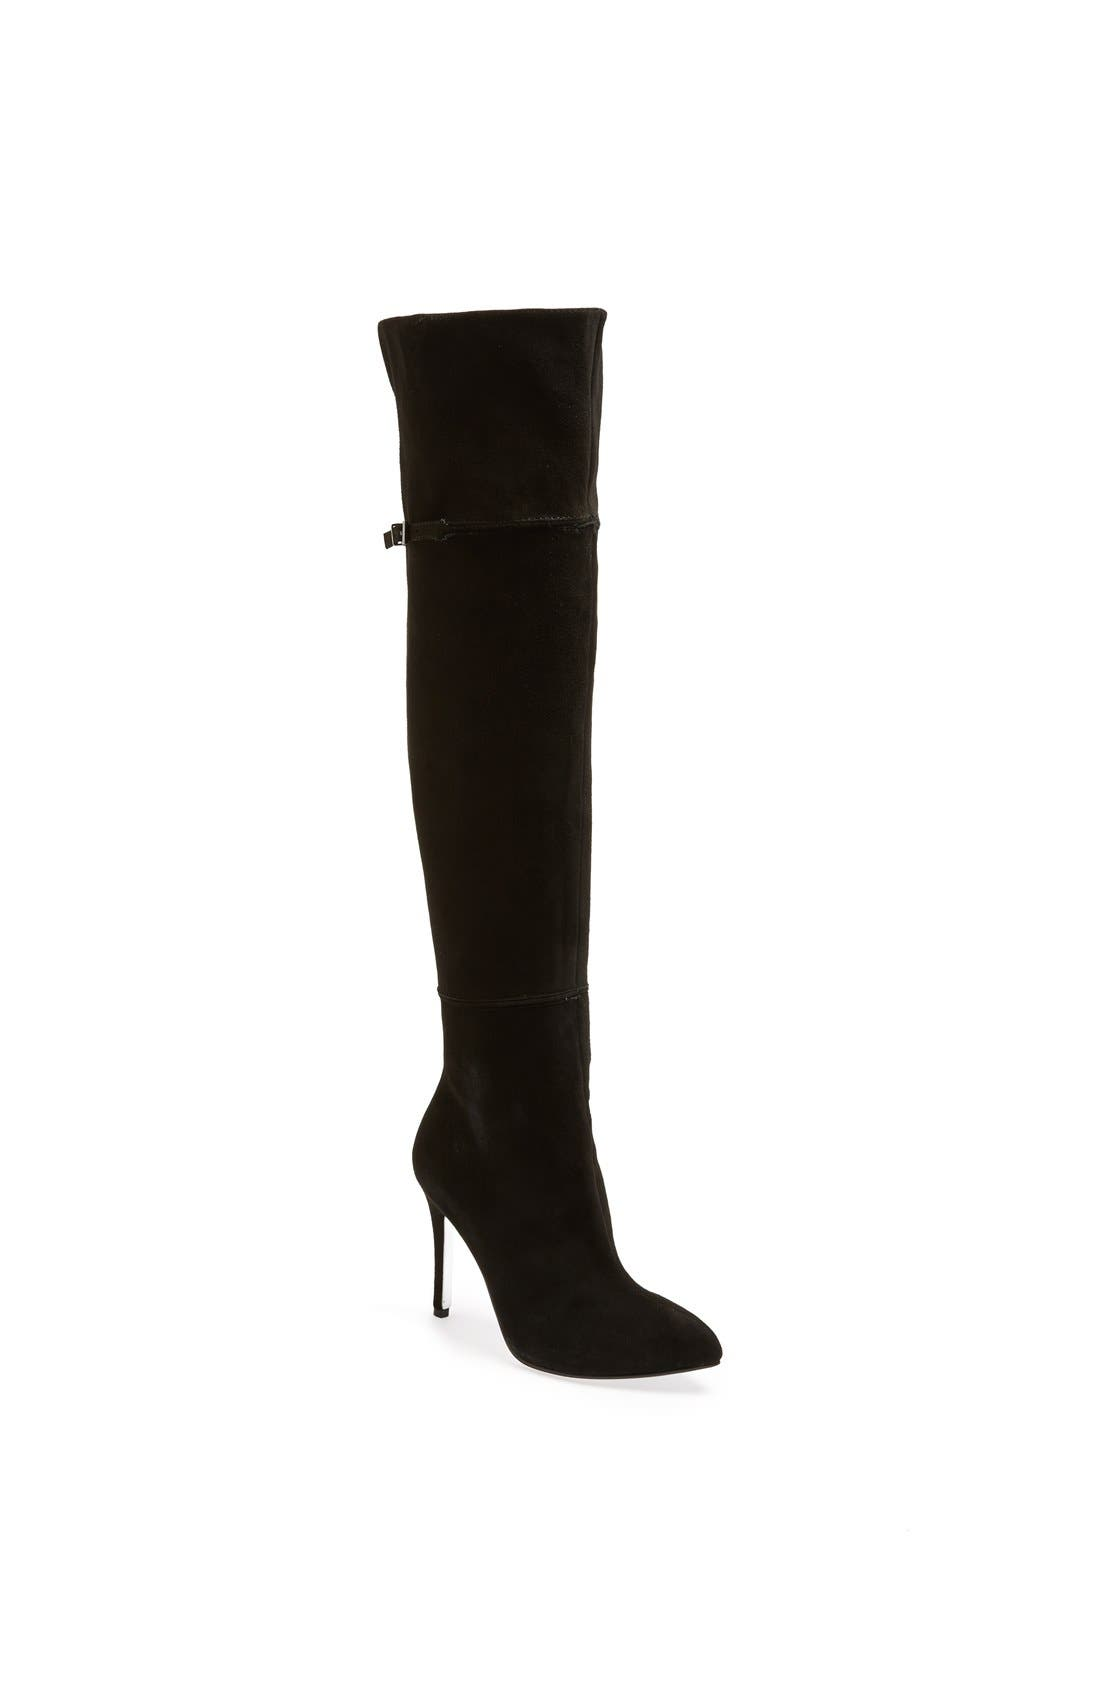 Main Image - Kristin Cavallari 'Cassie' Over the Knee Boot